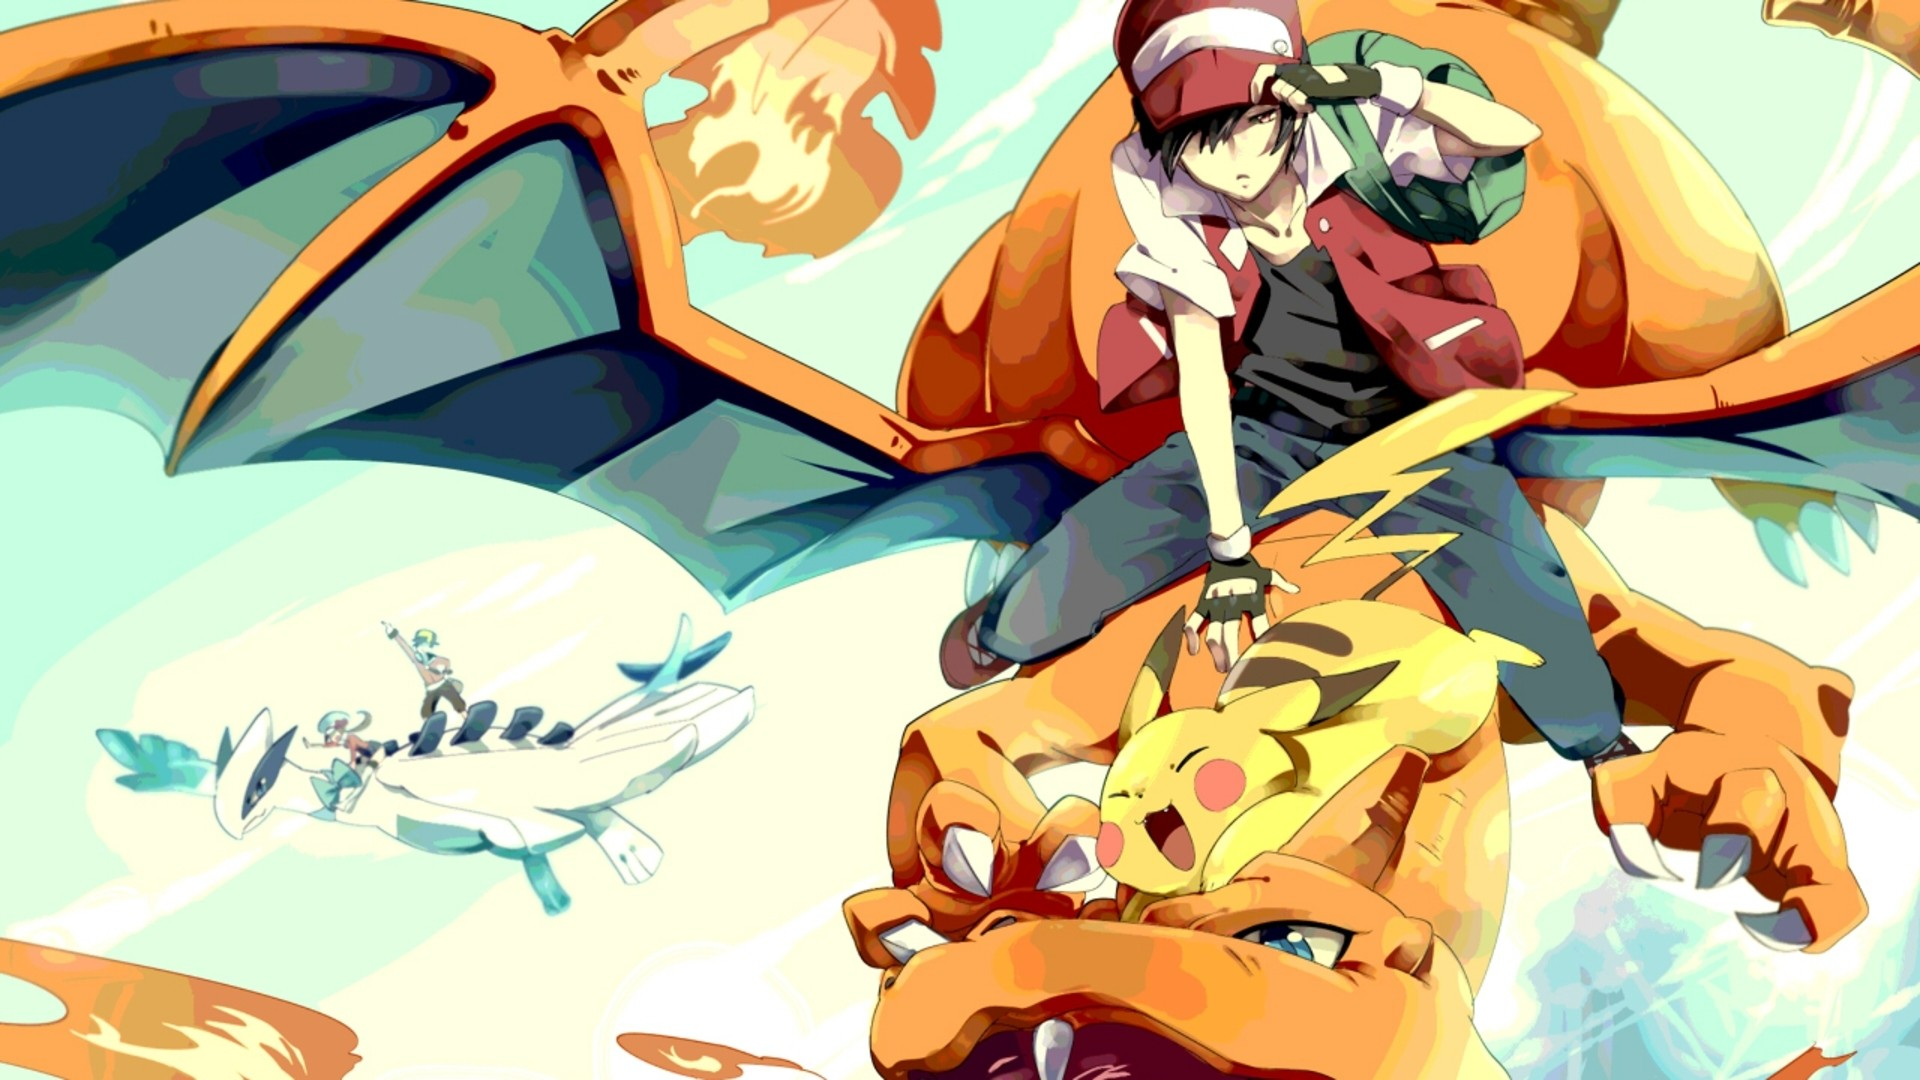 Red, the Pokemon Champion of the Kanto region. Oh, look there's gold in the  back!